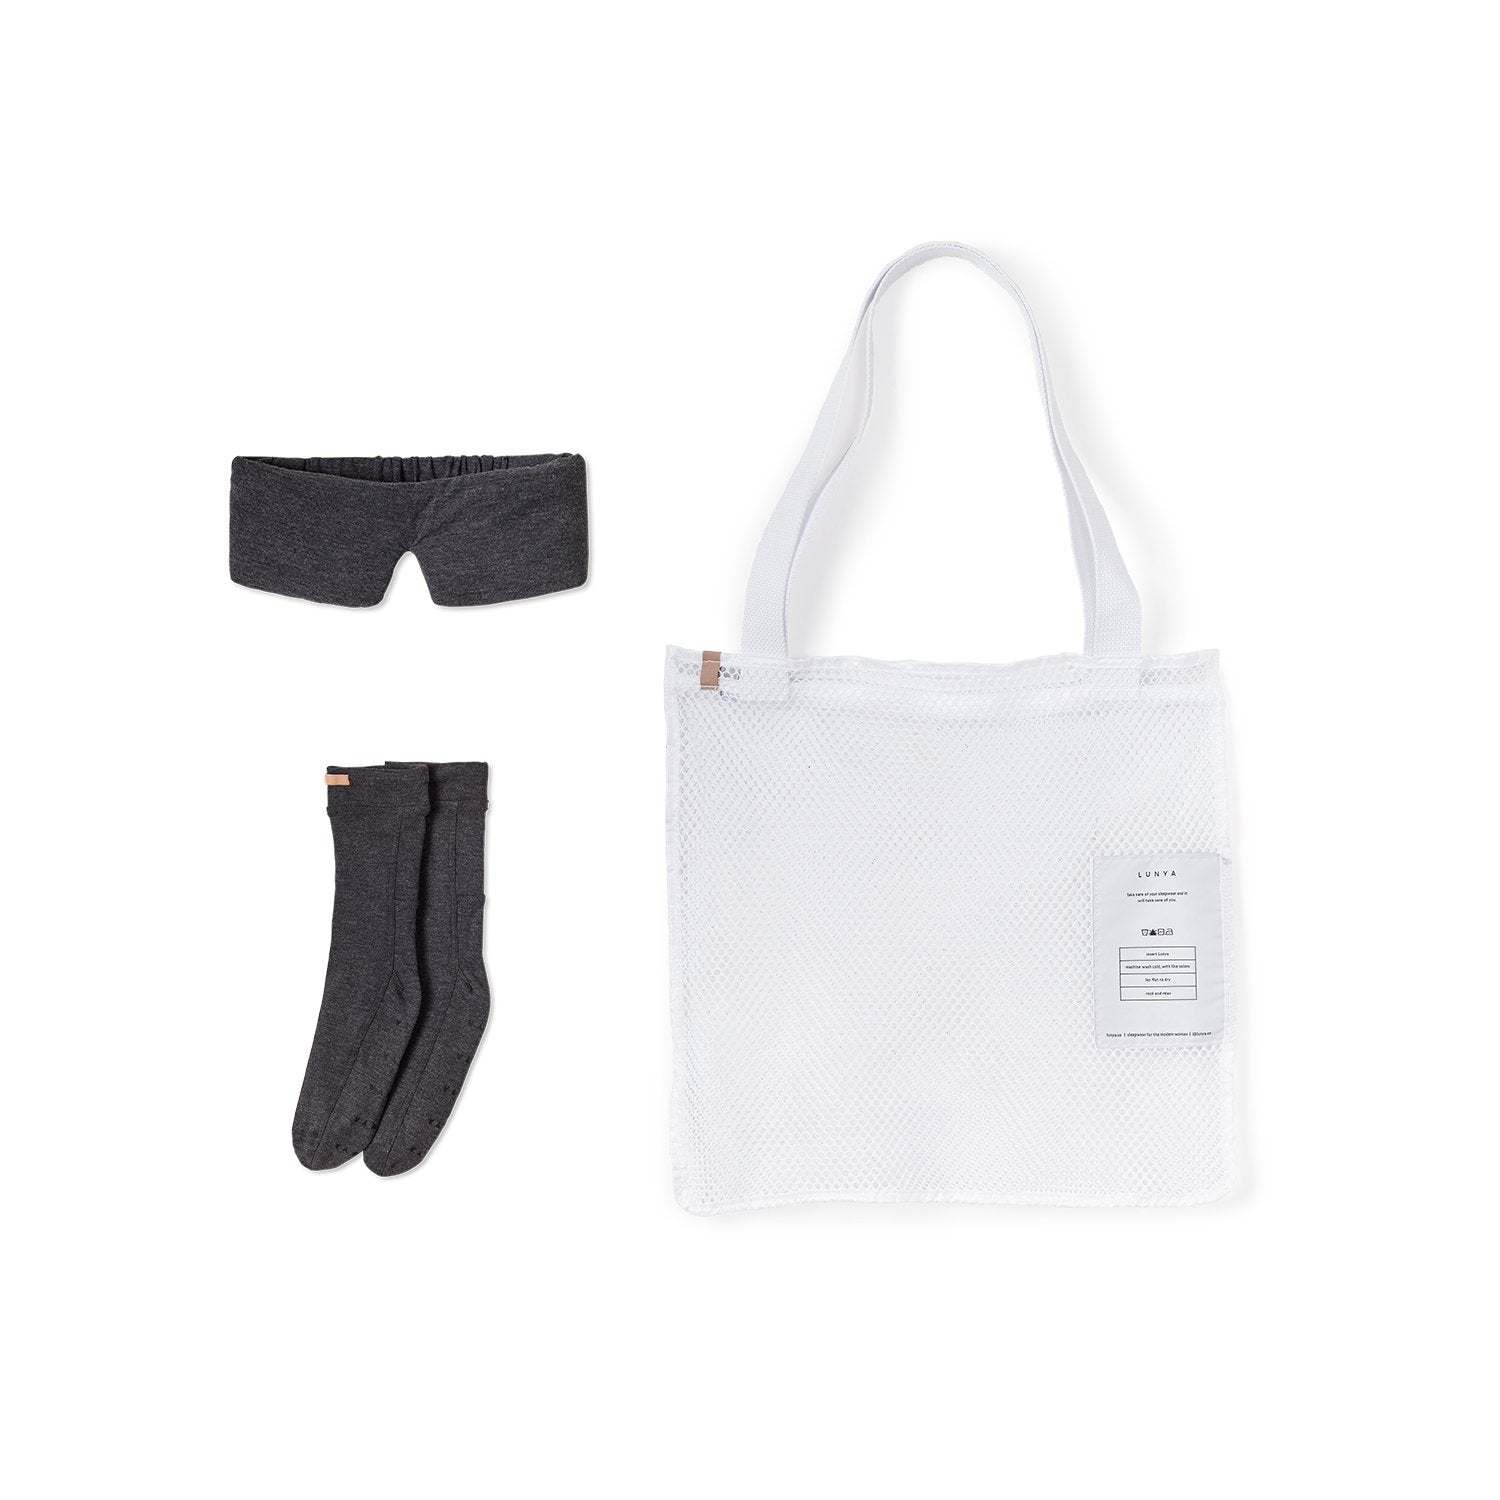 Lunya Sleepwear Restore Mini Travel Kit - #Charcoal